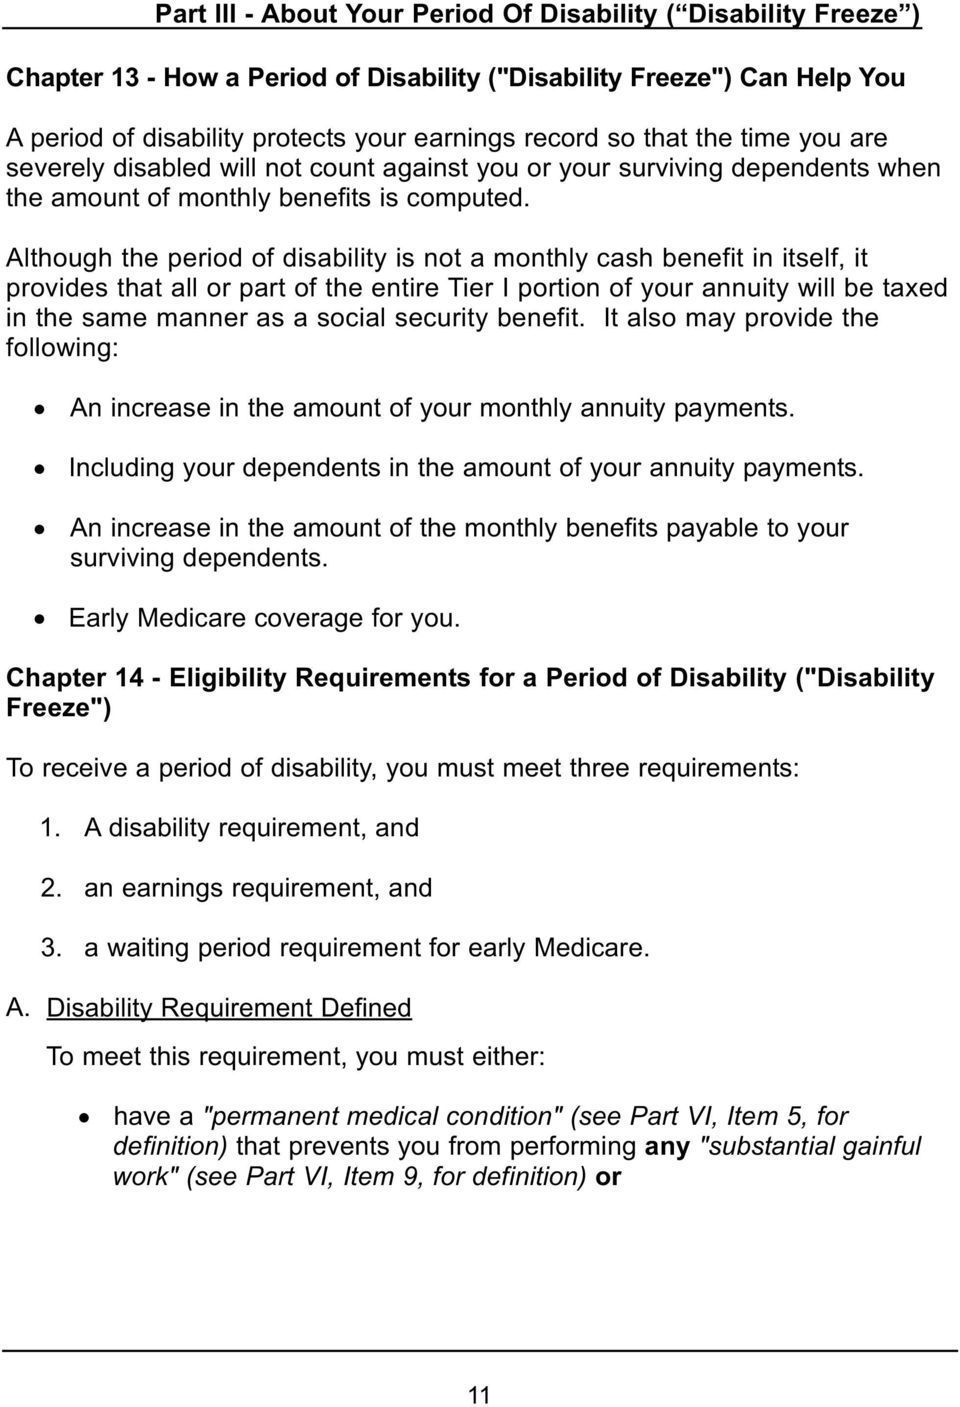 Although the period of disability is not a monthly cash benefit in itself, it provides that all or part of the entire Tier I portion of your annuity will be taxed in the same manner as a social